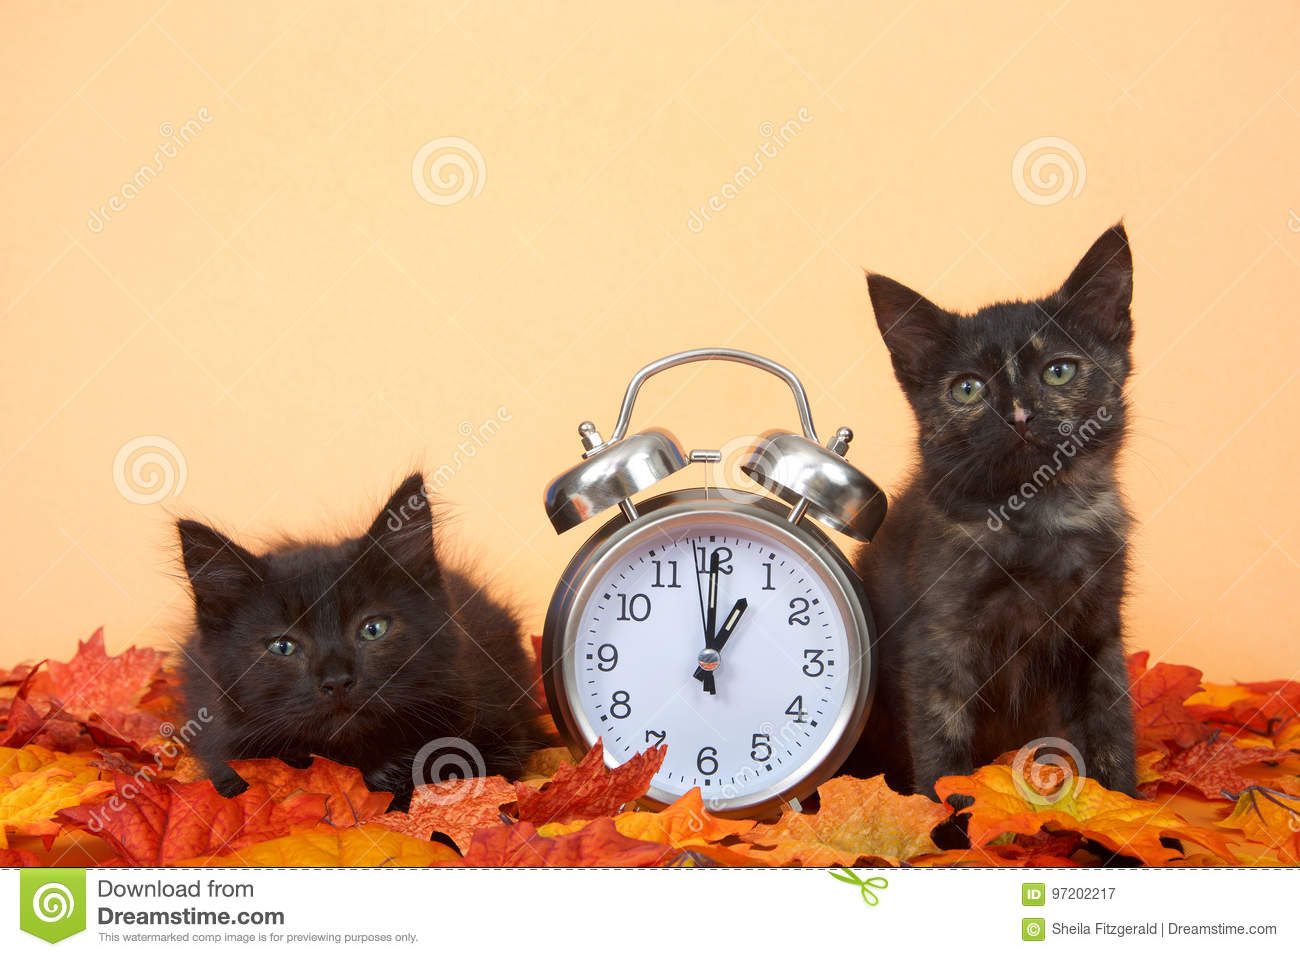 Black kittens in autumn leaves with clock, daylight savings concept